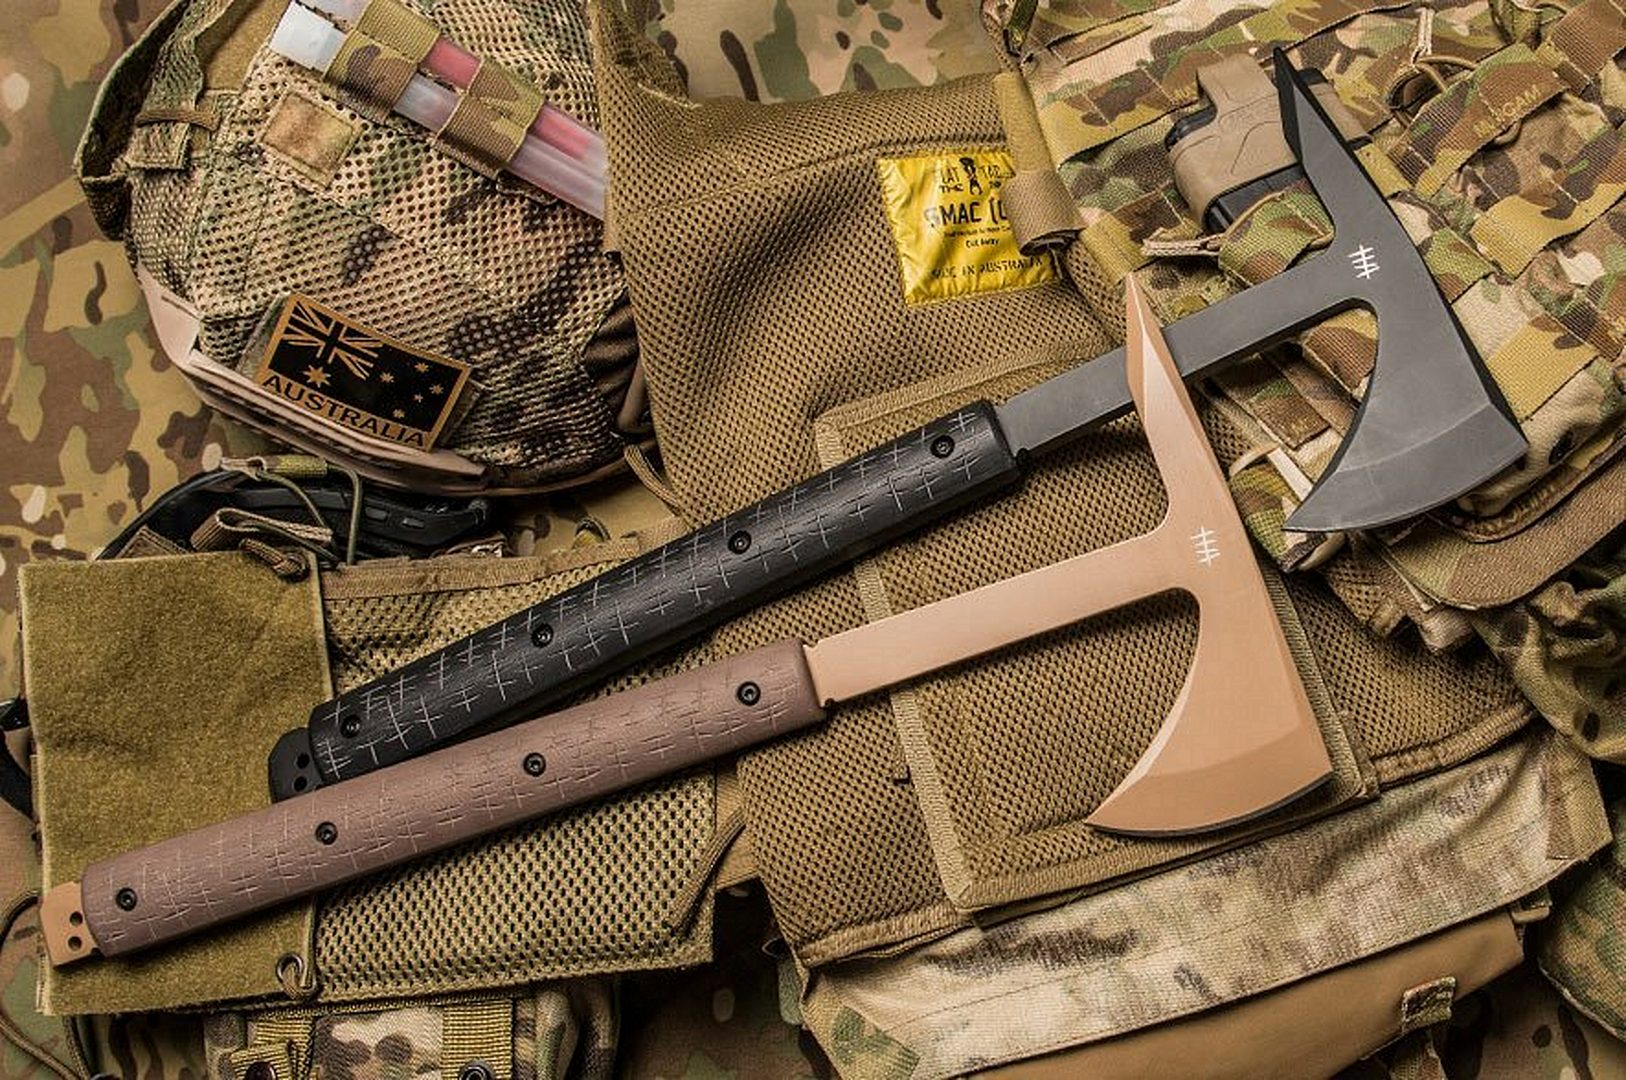 2 Tomahawks on Military Pattern Accessories